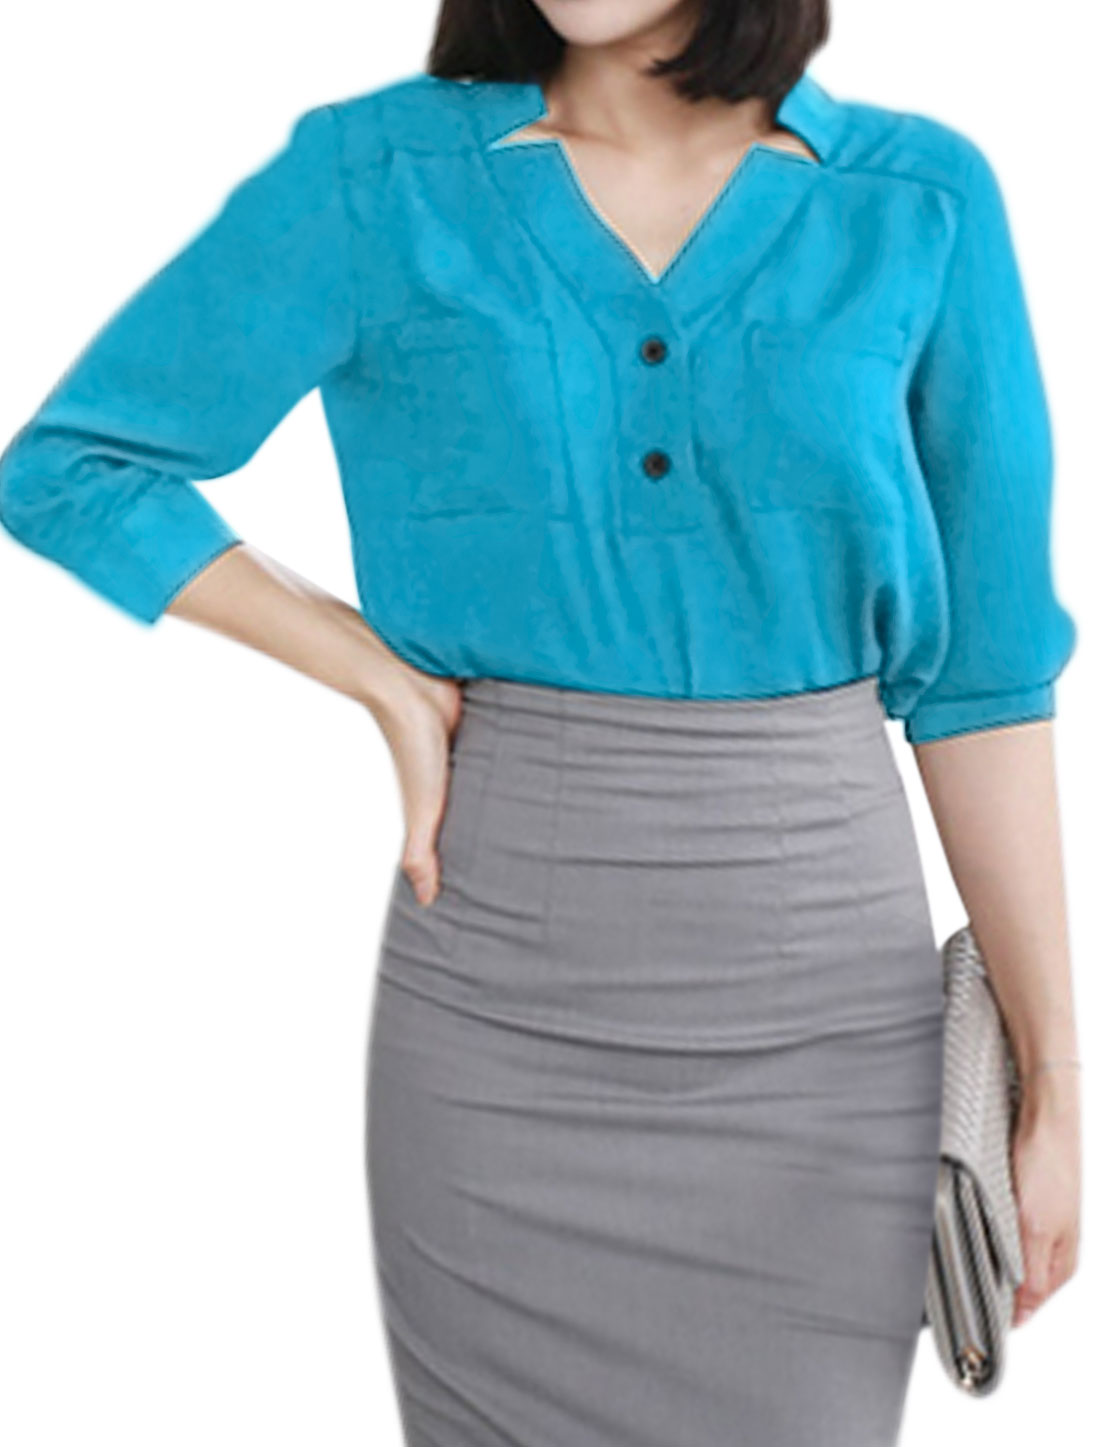 Women 3/4 Sleeves Asymmetric Neck Half Placket Blouse Blue XS